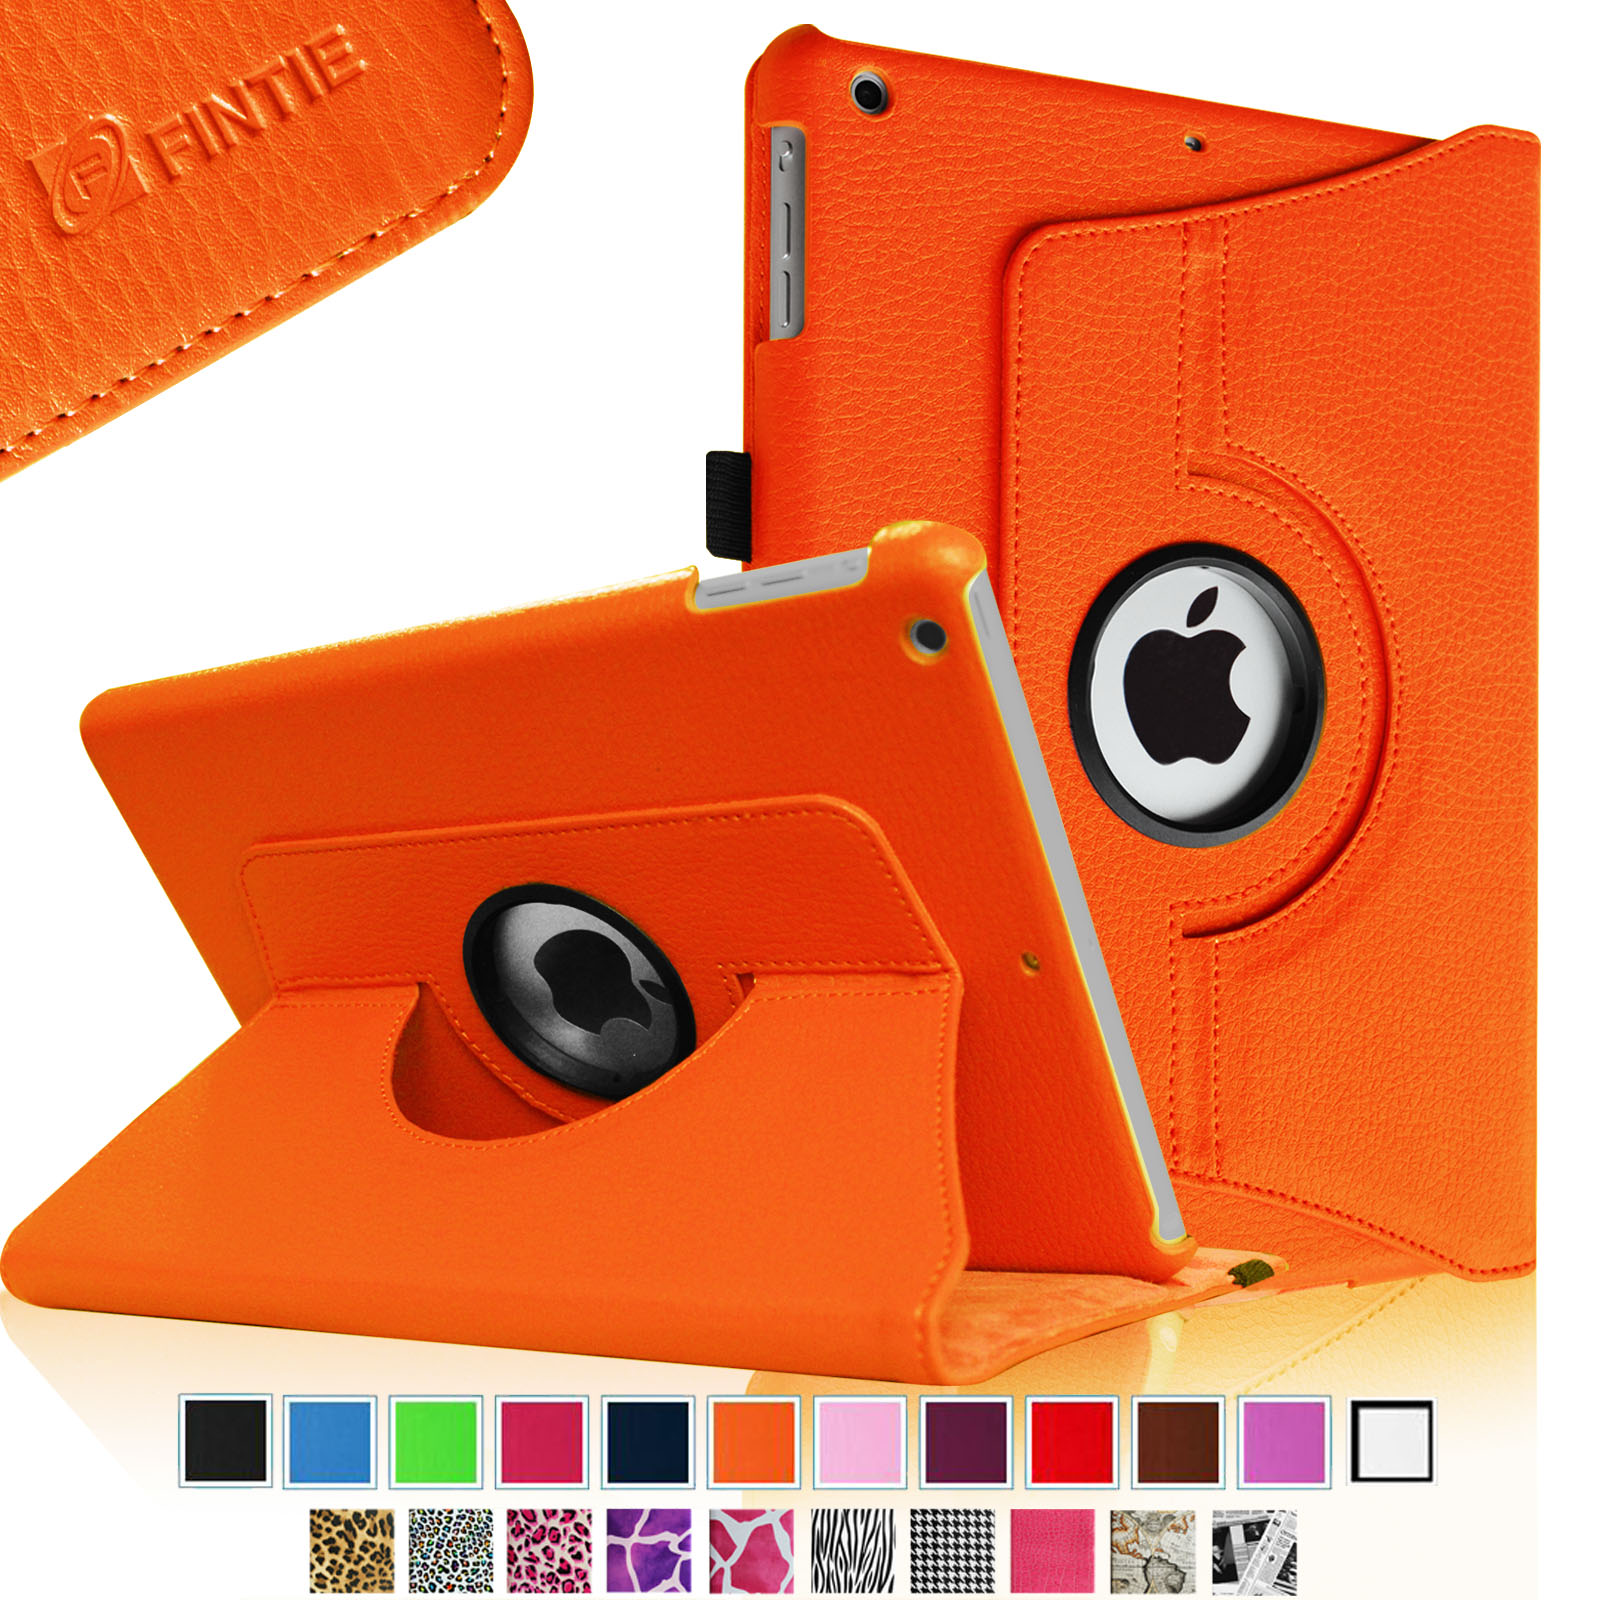 Fintie iPad Air Rotating Case - 360 Degree Rotating Stand Cover with Auto Sleep Wake, Orange